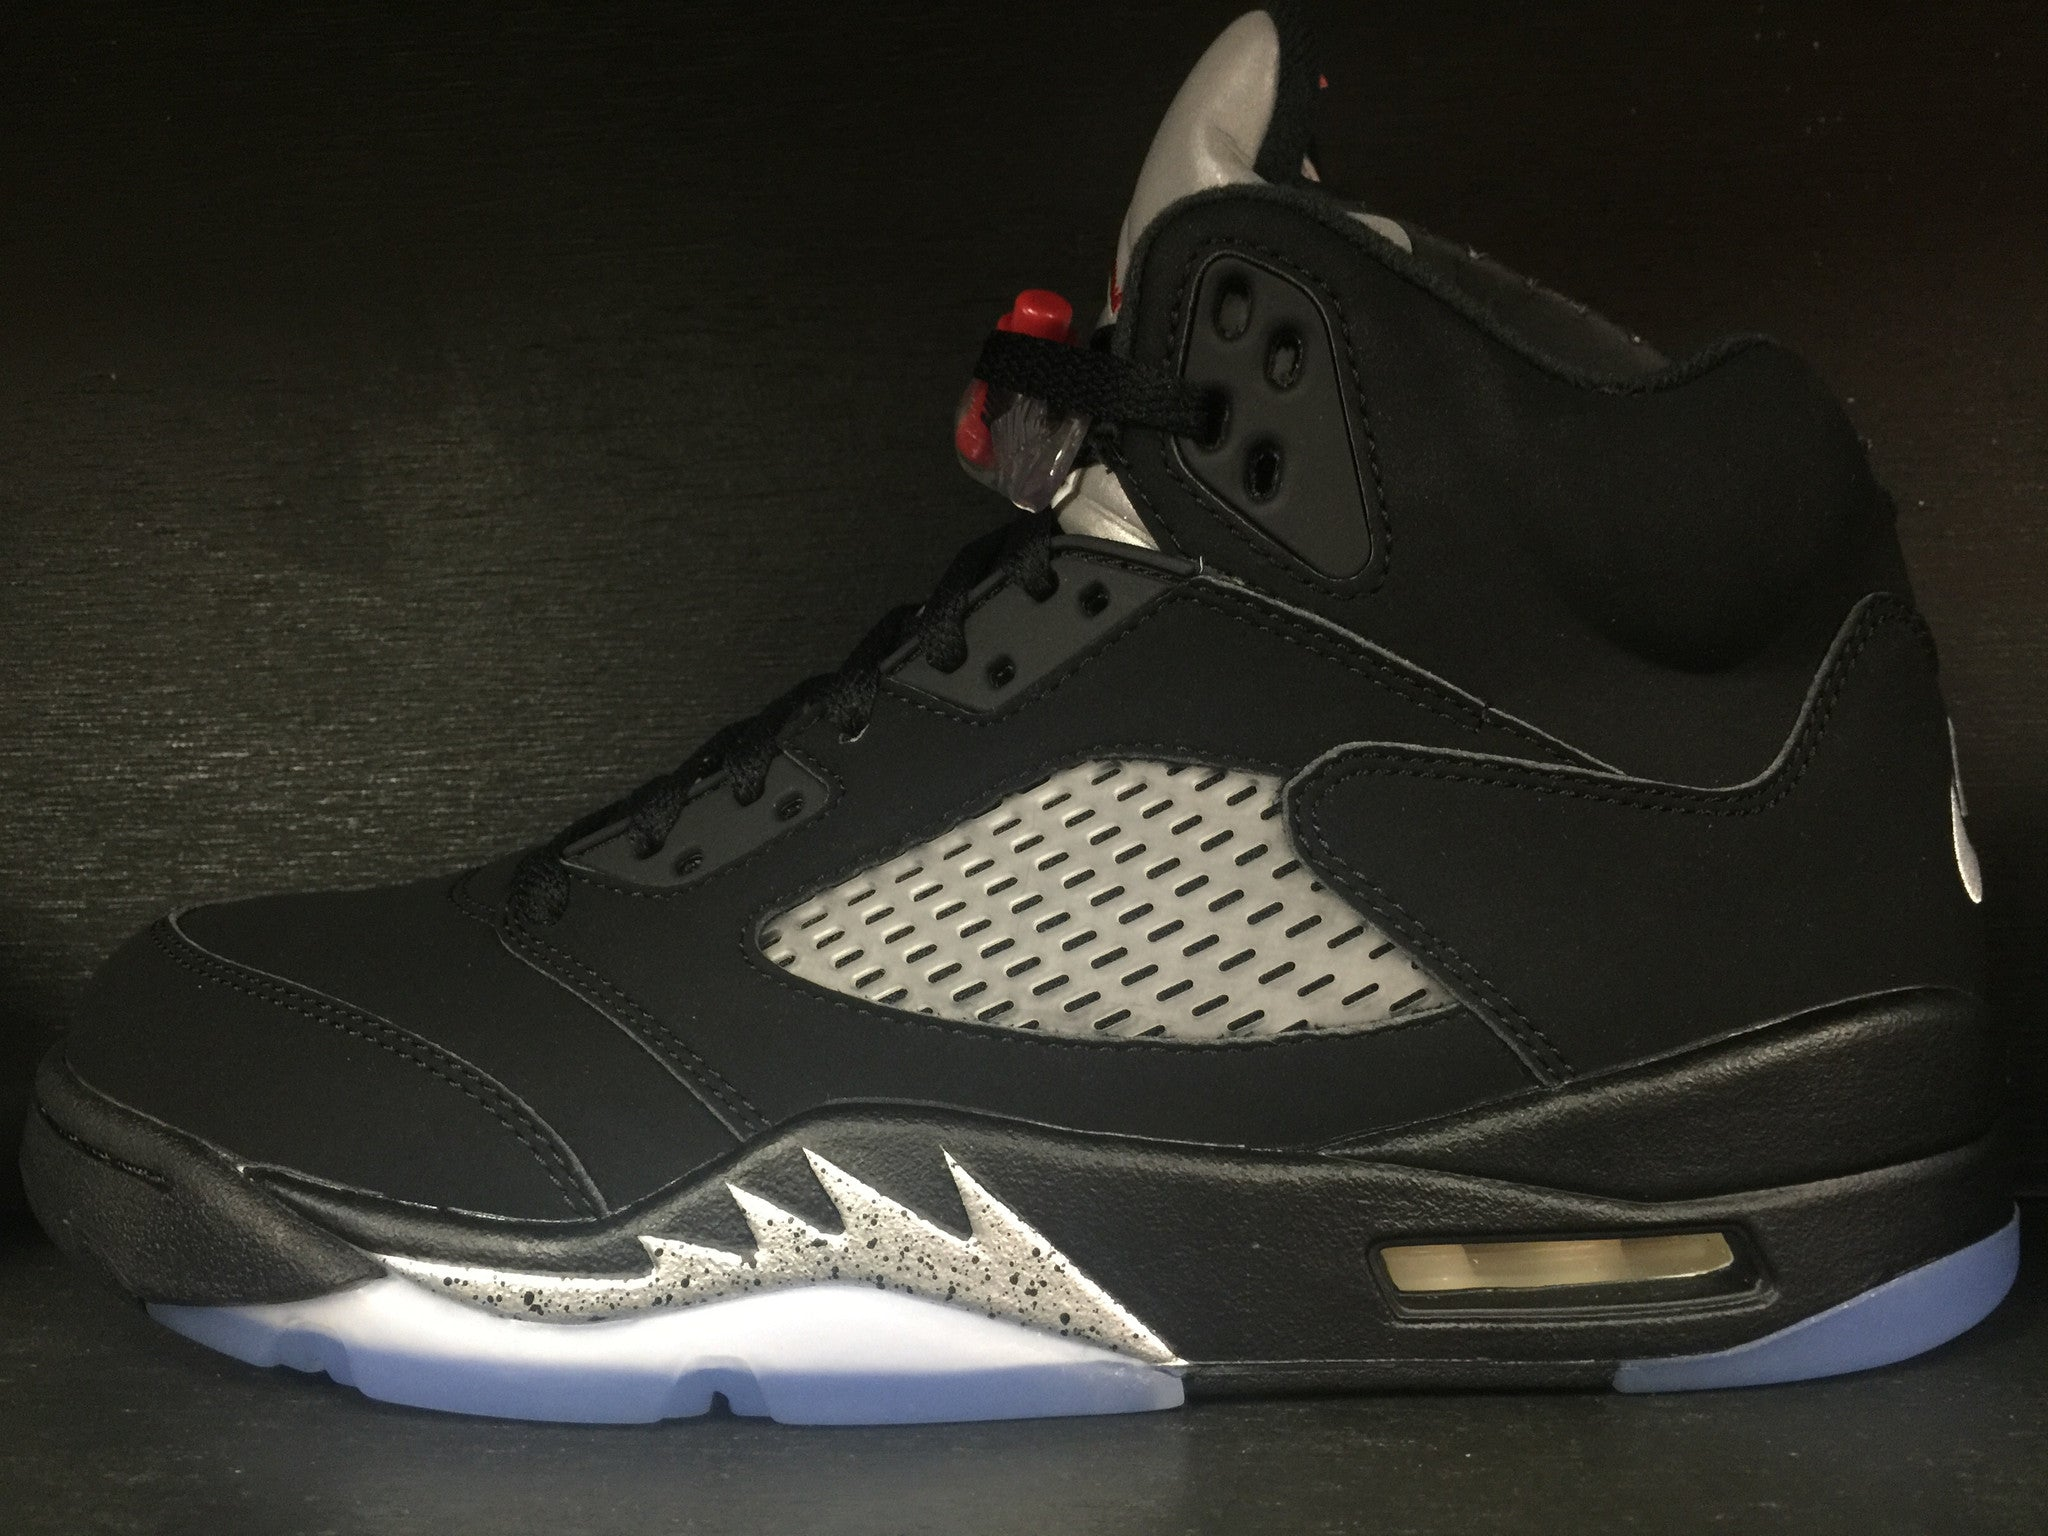 Air Jordan 5 Retro OG 'Black Metallic' '2016'